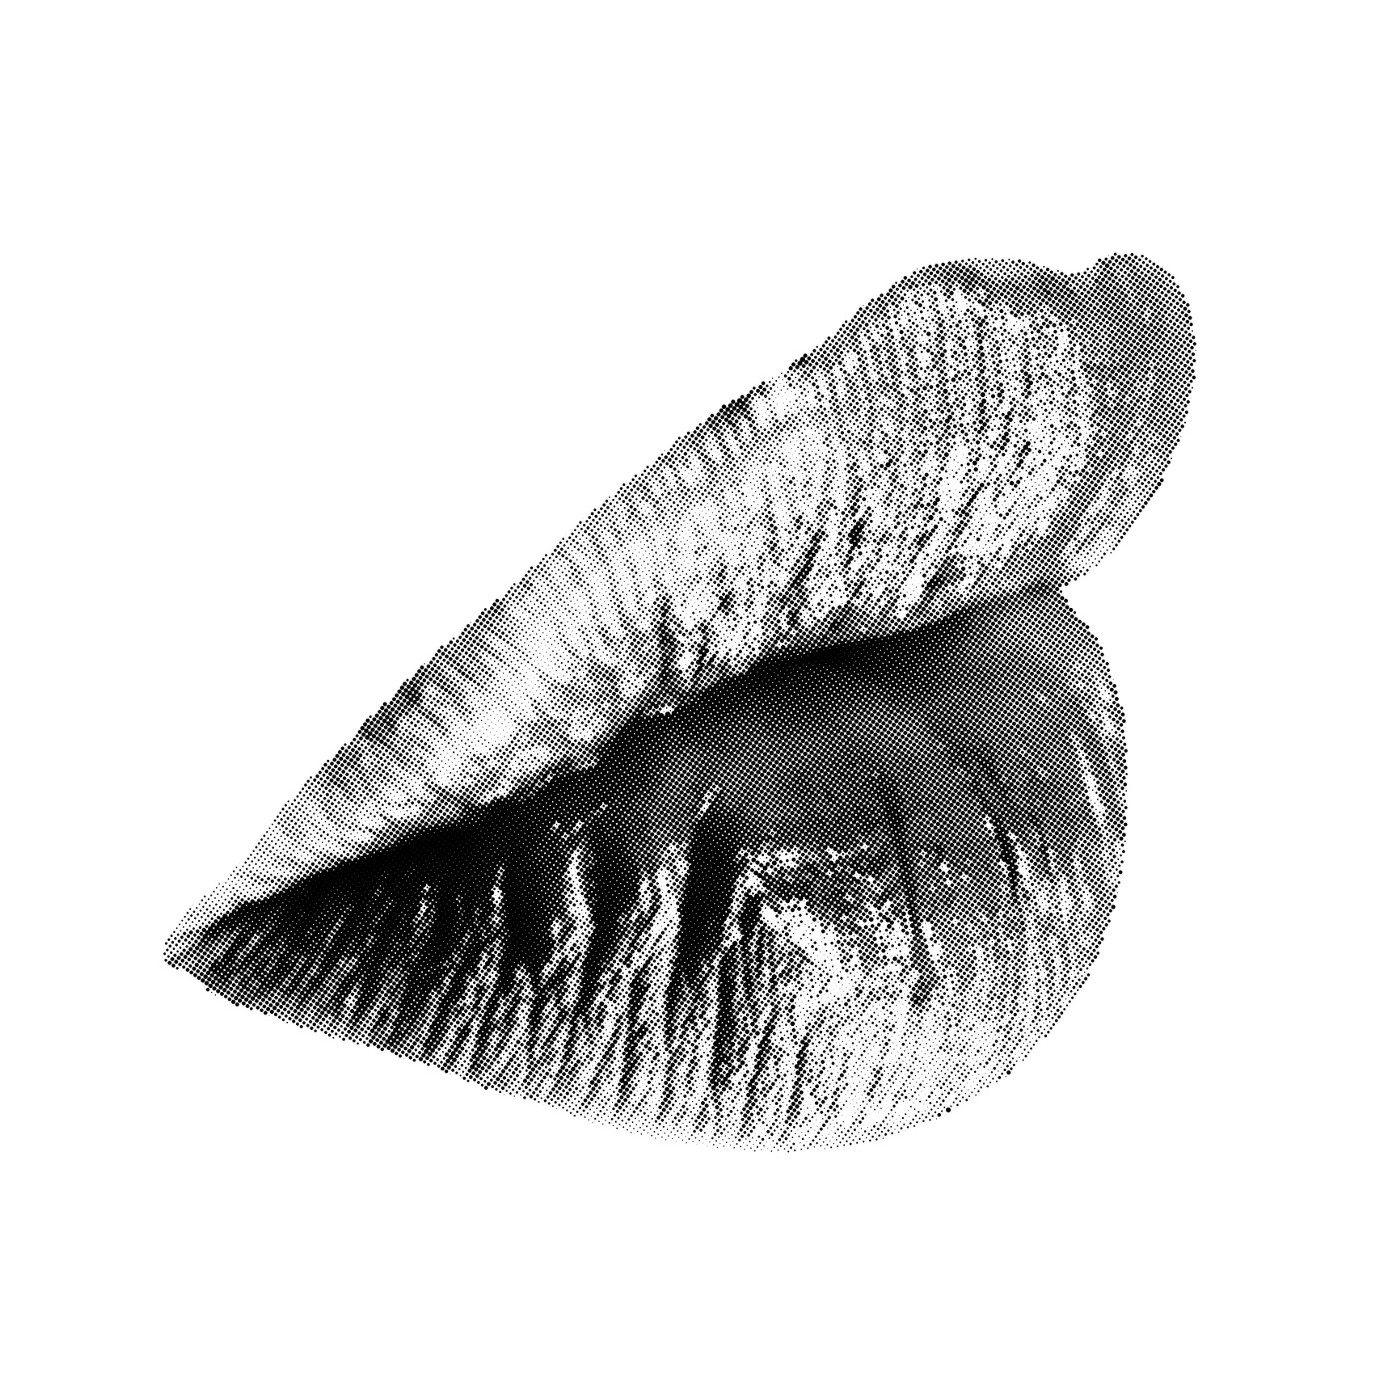 Black and white image of a woman's lips.